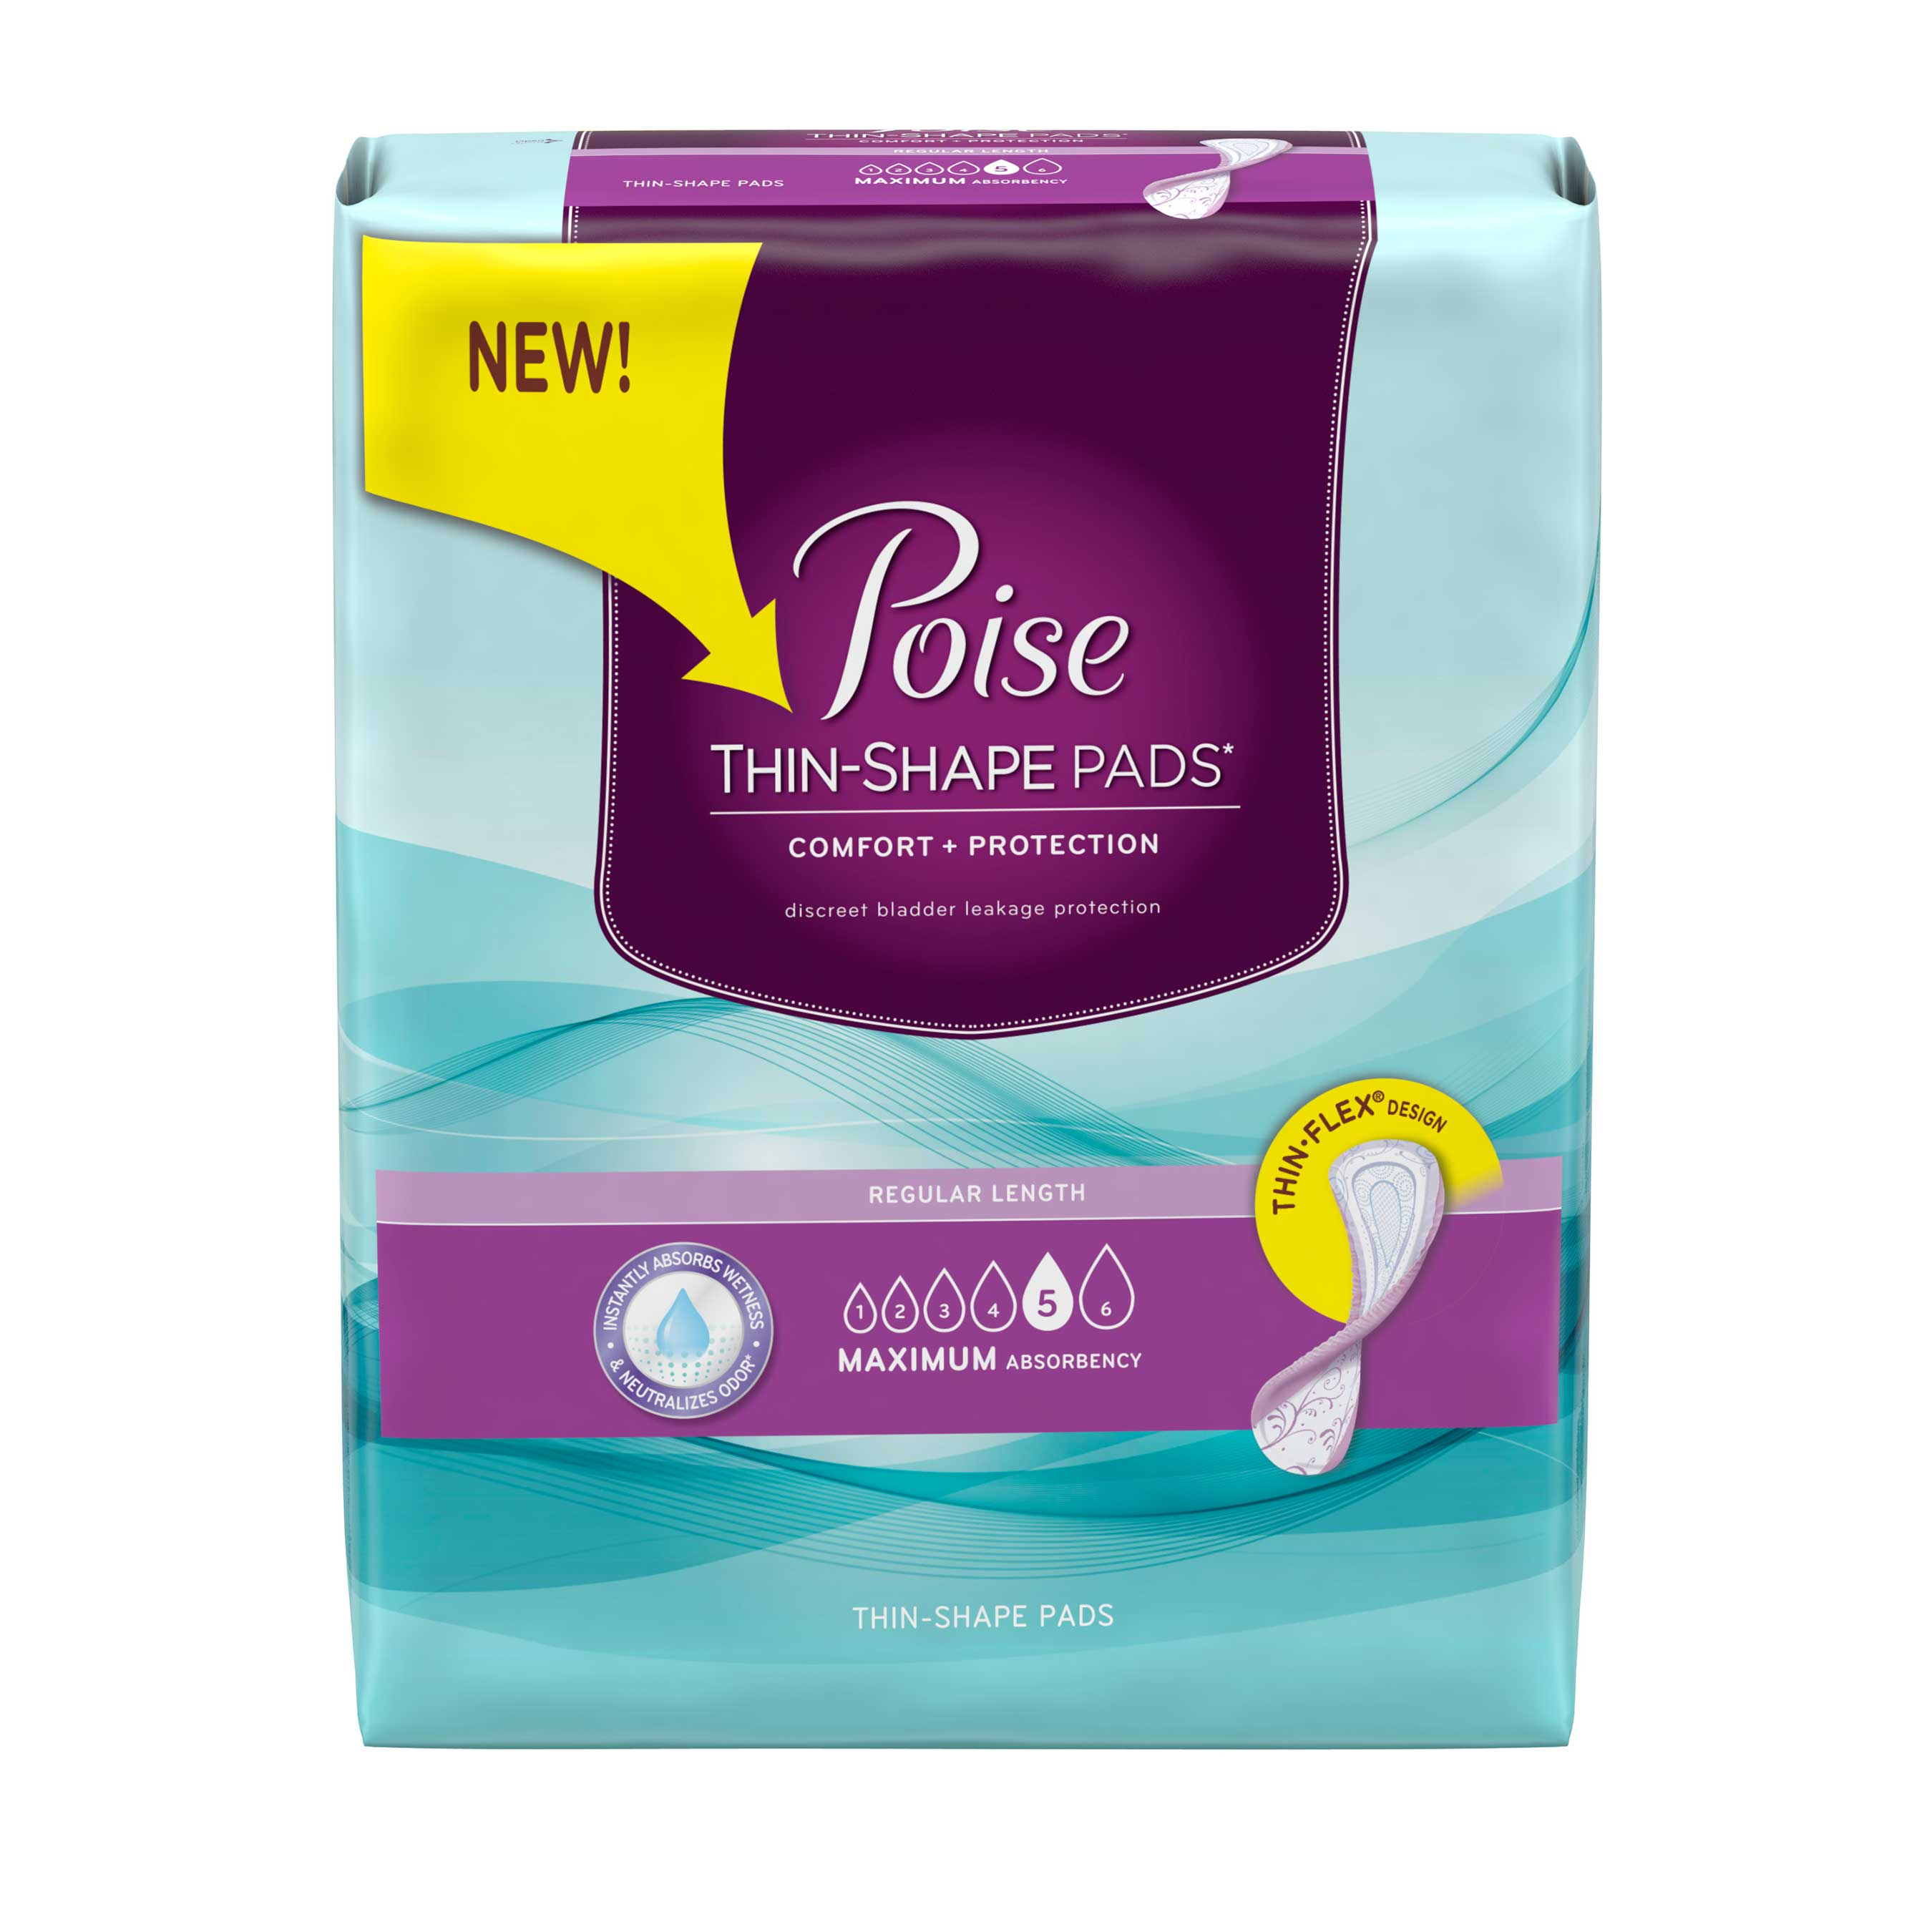 New Poise Thin-Shape pads, which are specifically designed for light bladder leakage, are up to 40% thinner than original Poise brand pads and feature a Thin-Flex design for extraordinary protection.